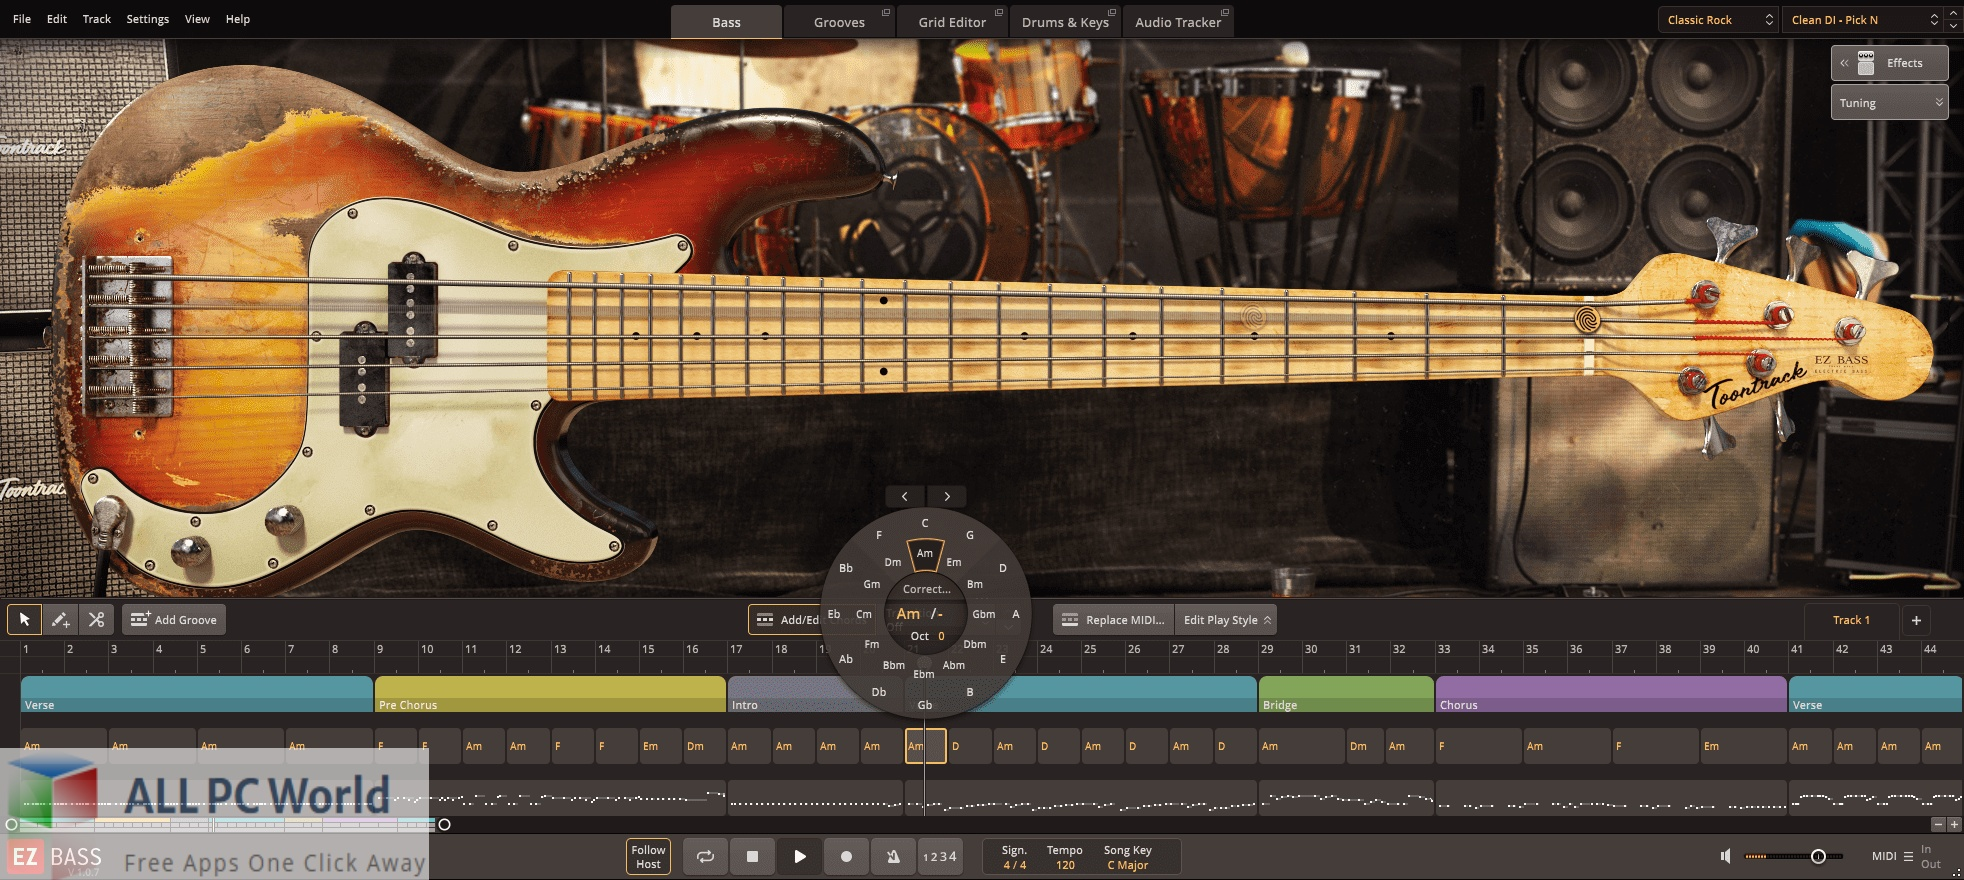 Toontrack Classic Rock EBX Free Download